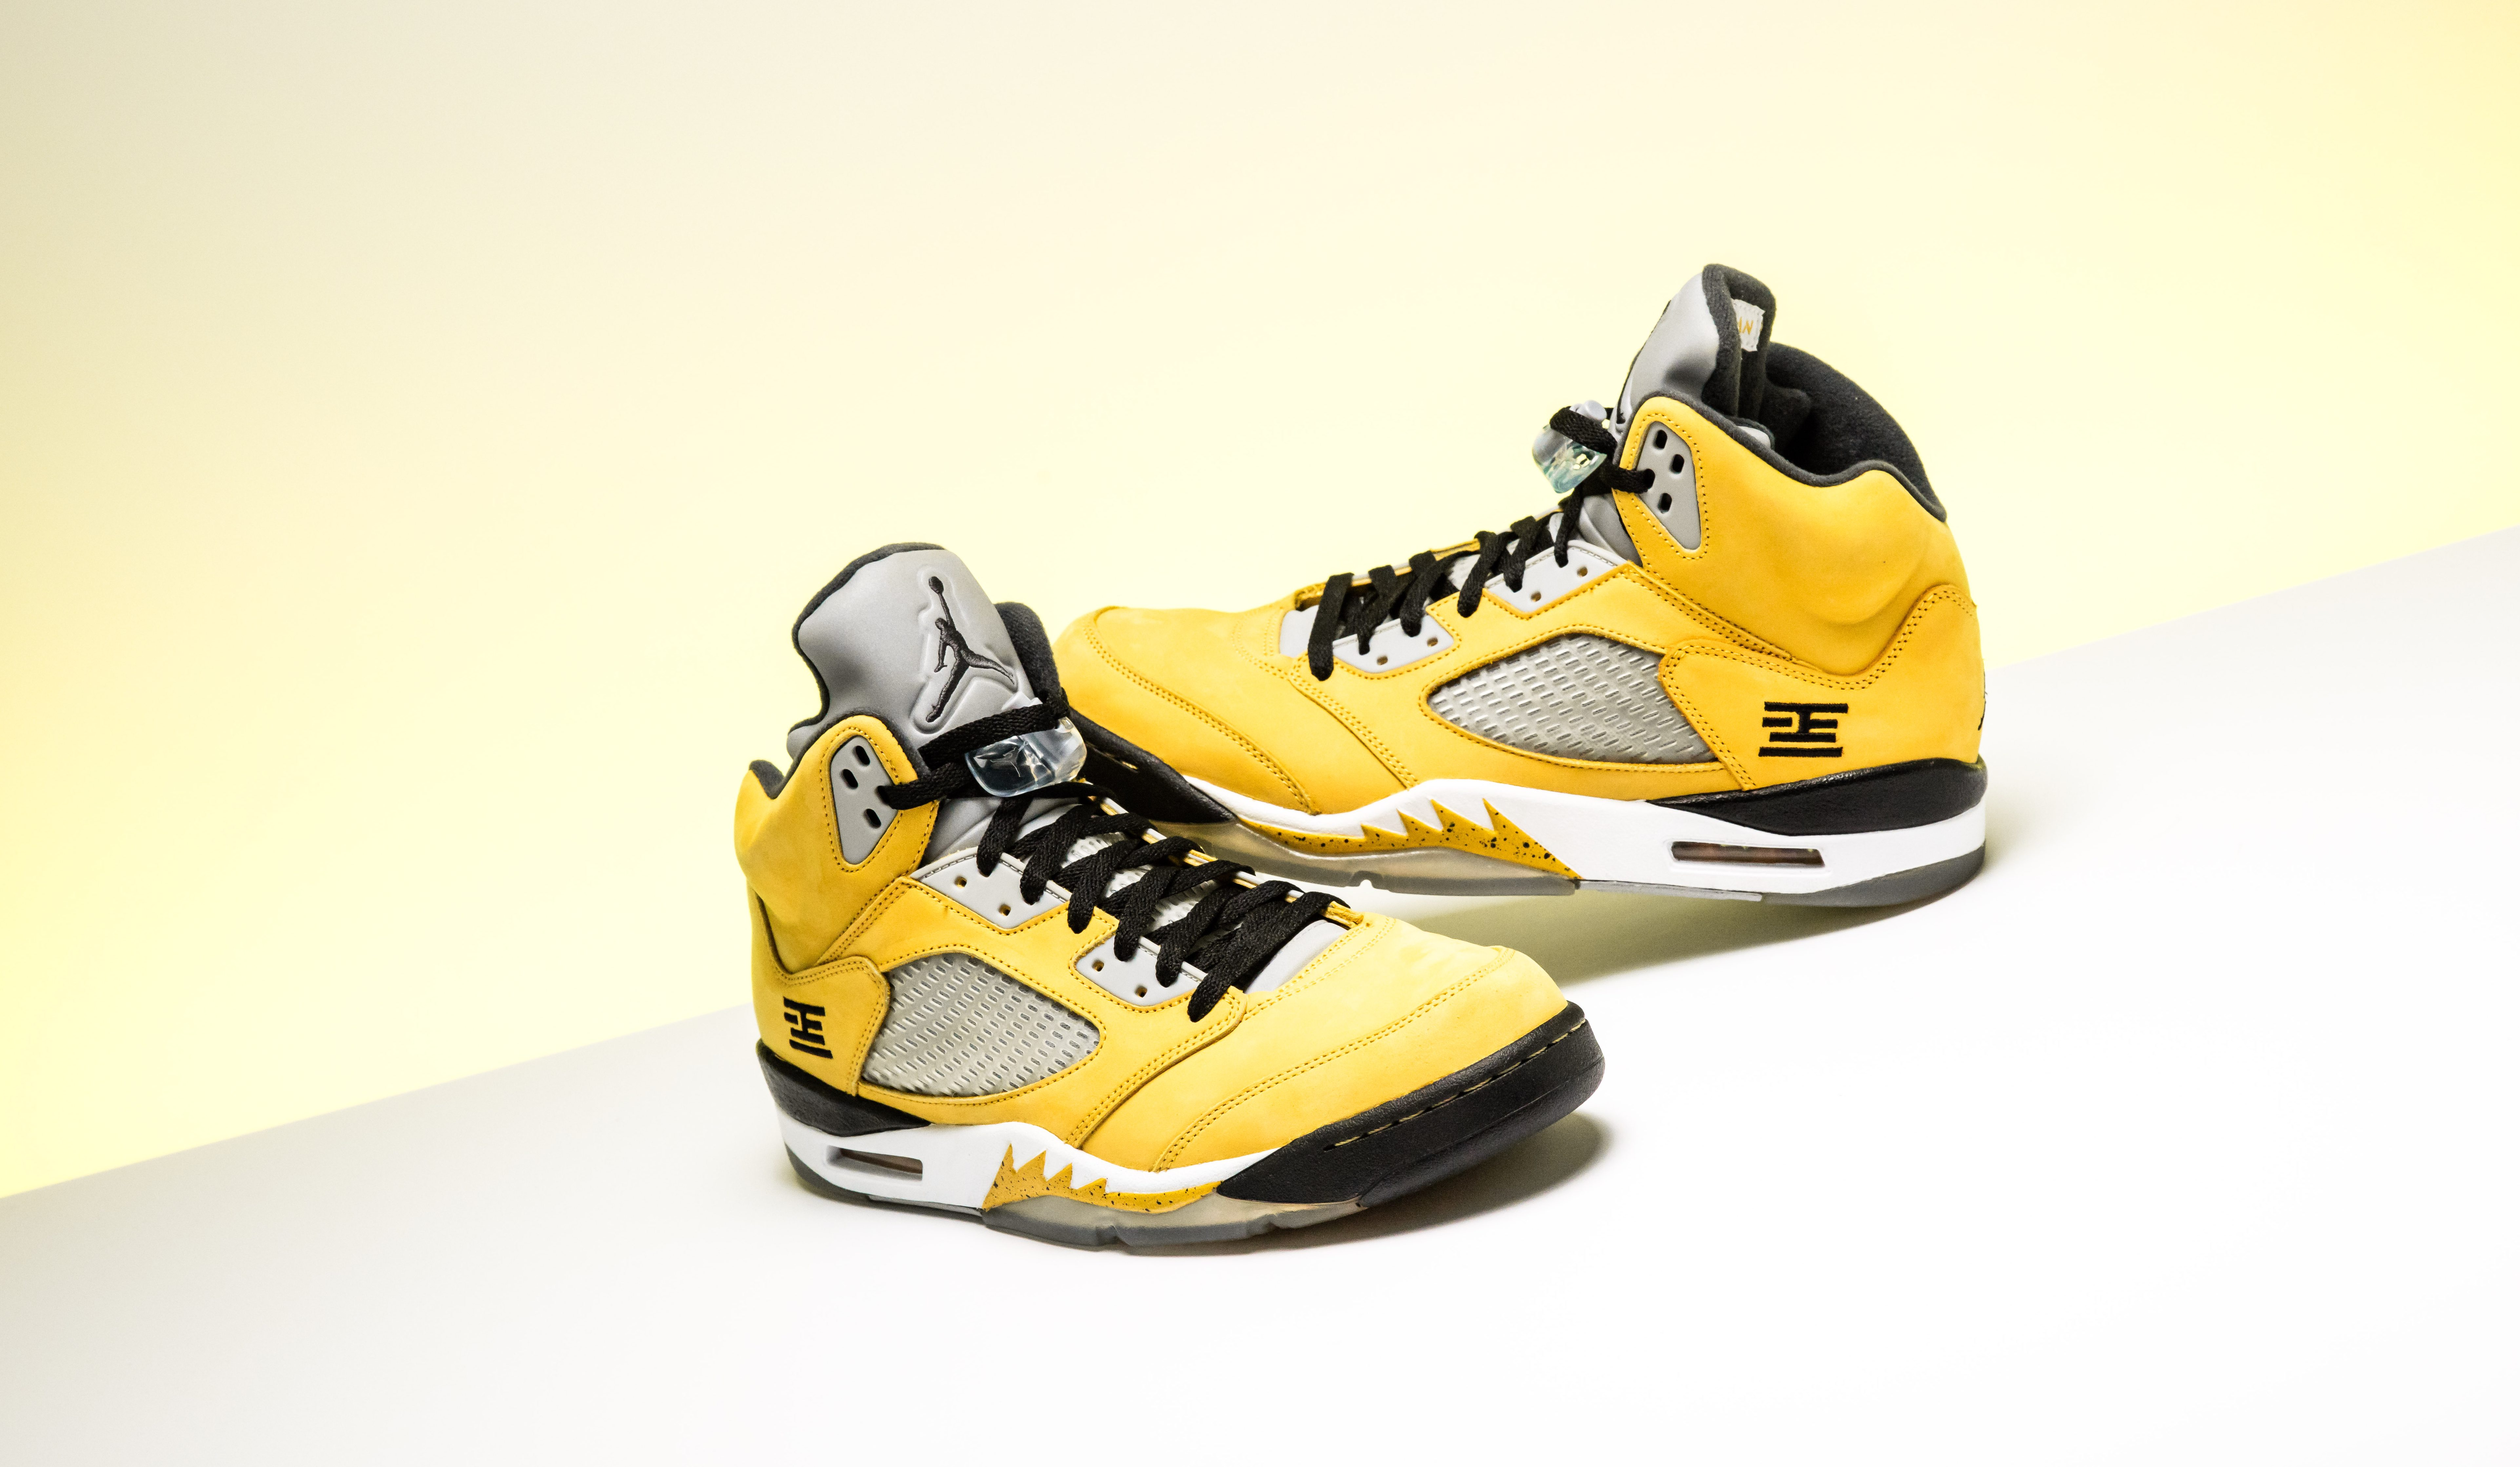 Rare sneaker collection bought at Sotheby's auction for $850,000